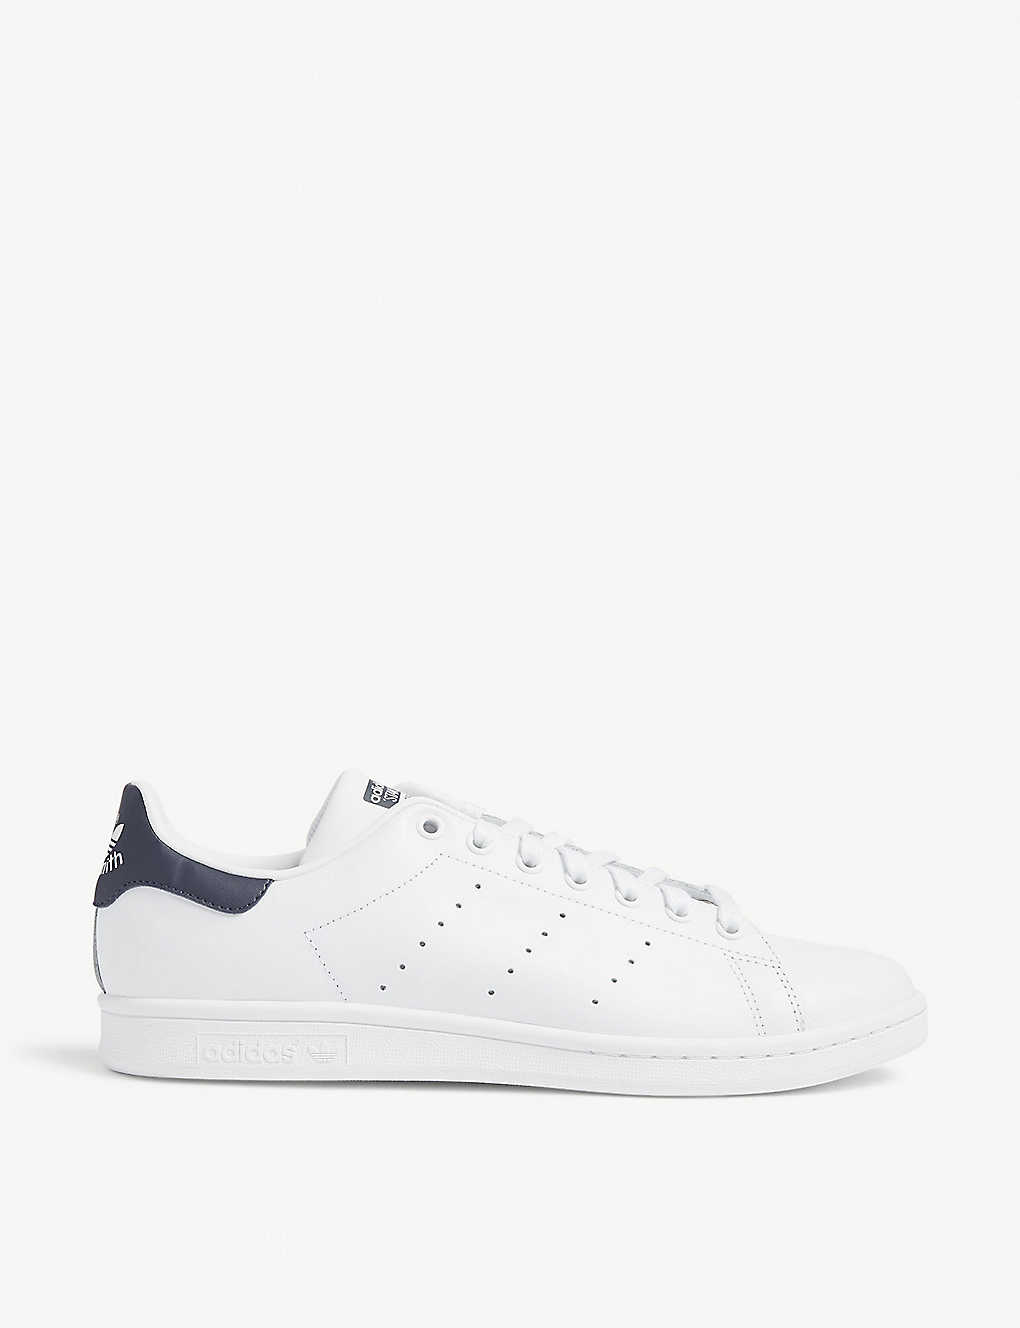 on sale 4e2b3 38241 Stan Smith leather trainers